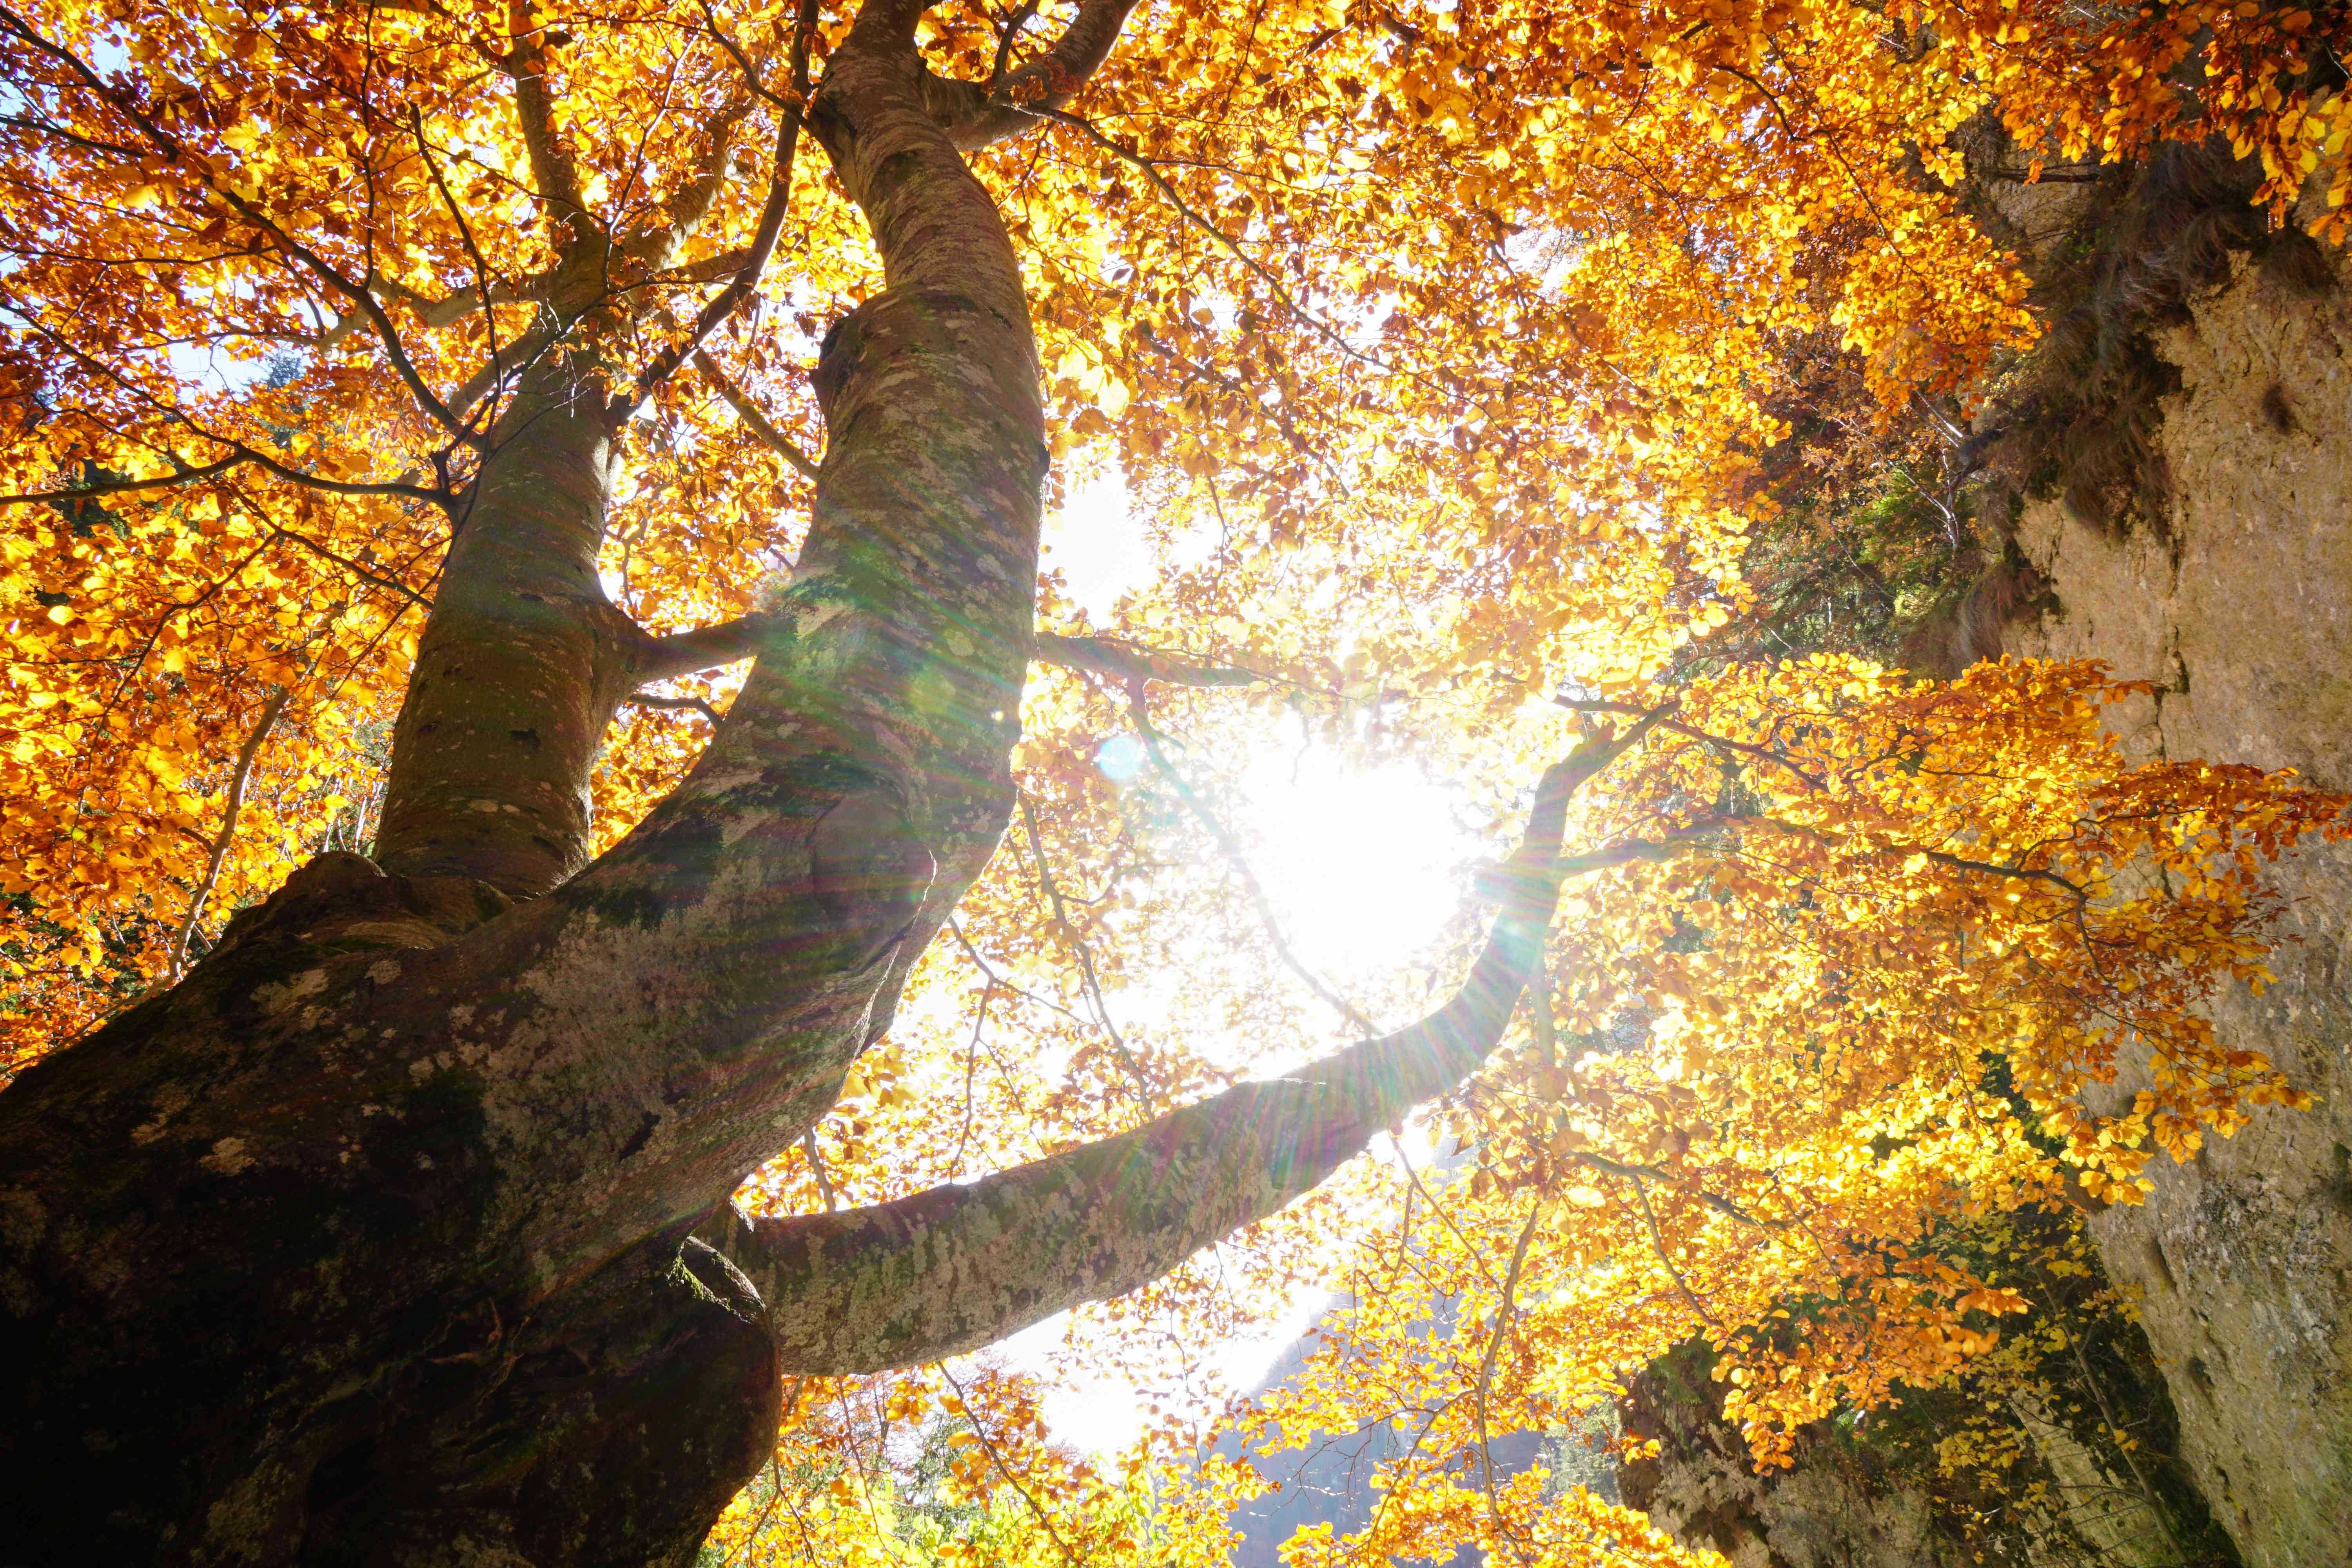 looking up shot into autumnal tree with orange leaves and sun filtering through branches